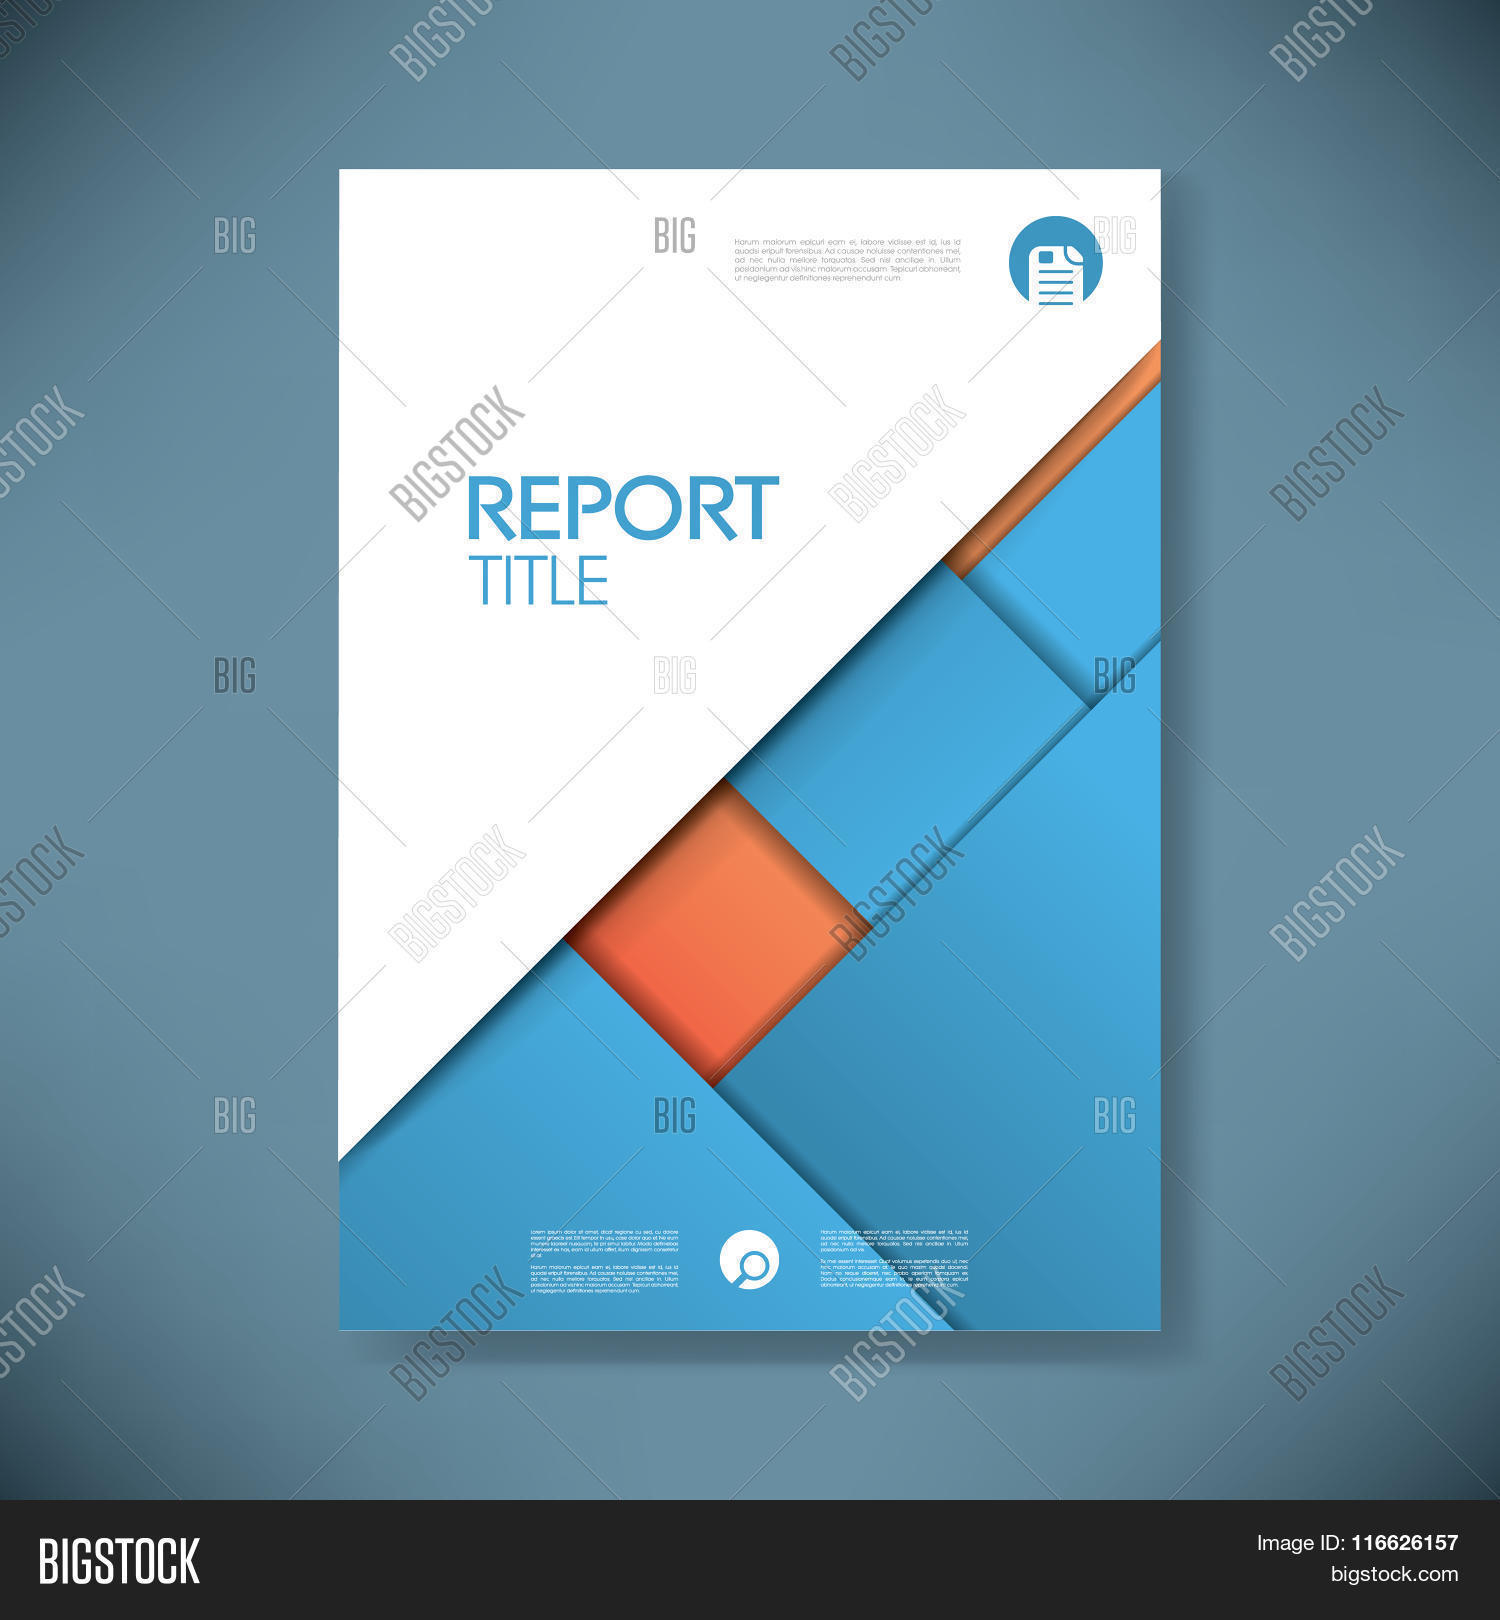 business report cover template on blue material design background business report cover template on blue material design background brochure or presentation title pa